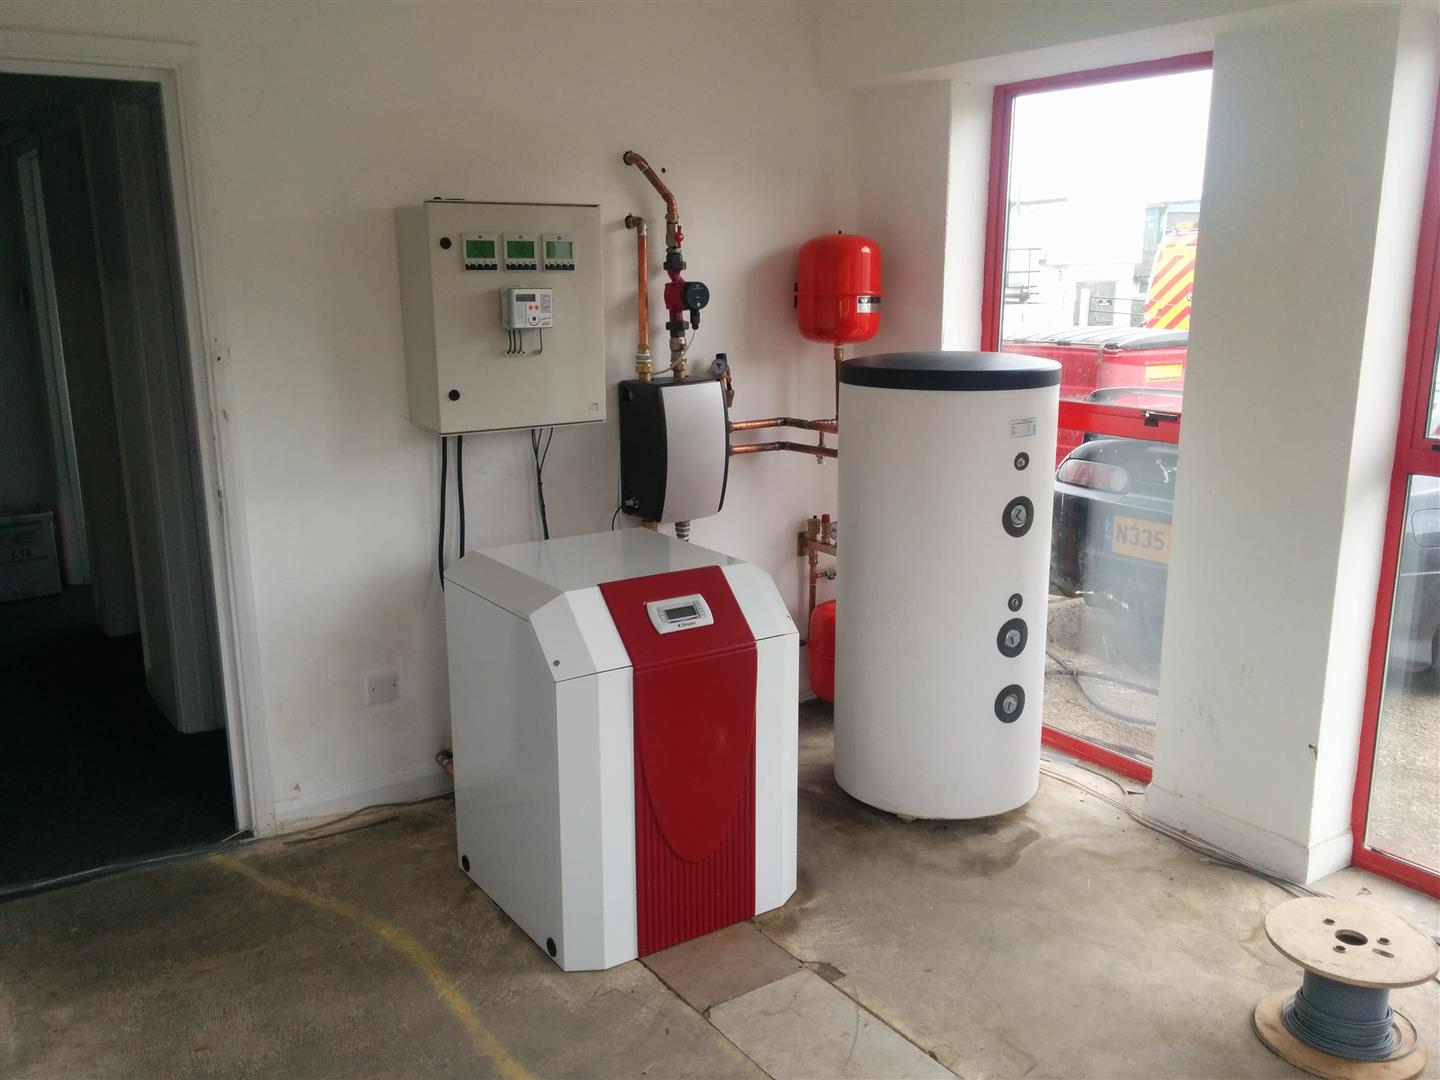 Installed ground source heat pump